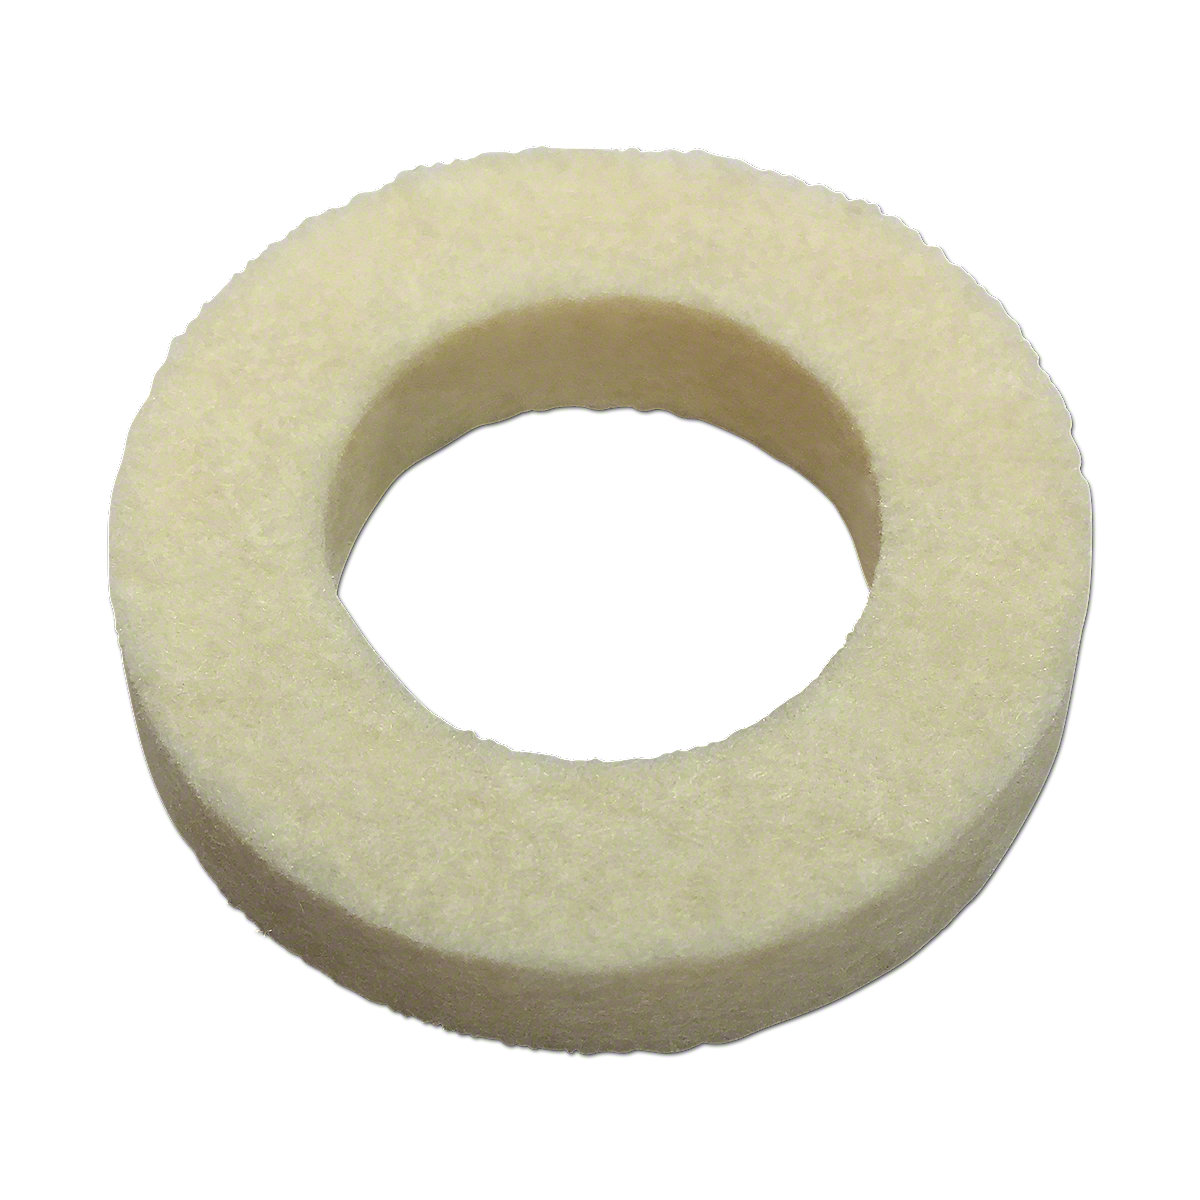 ABC3674 Upper Steering Column Felt Seal